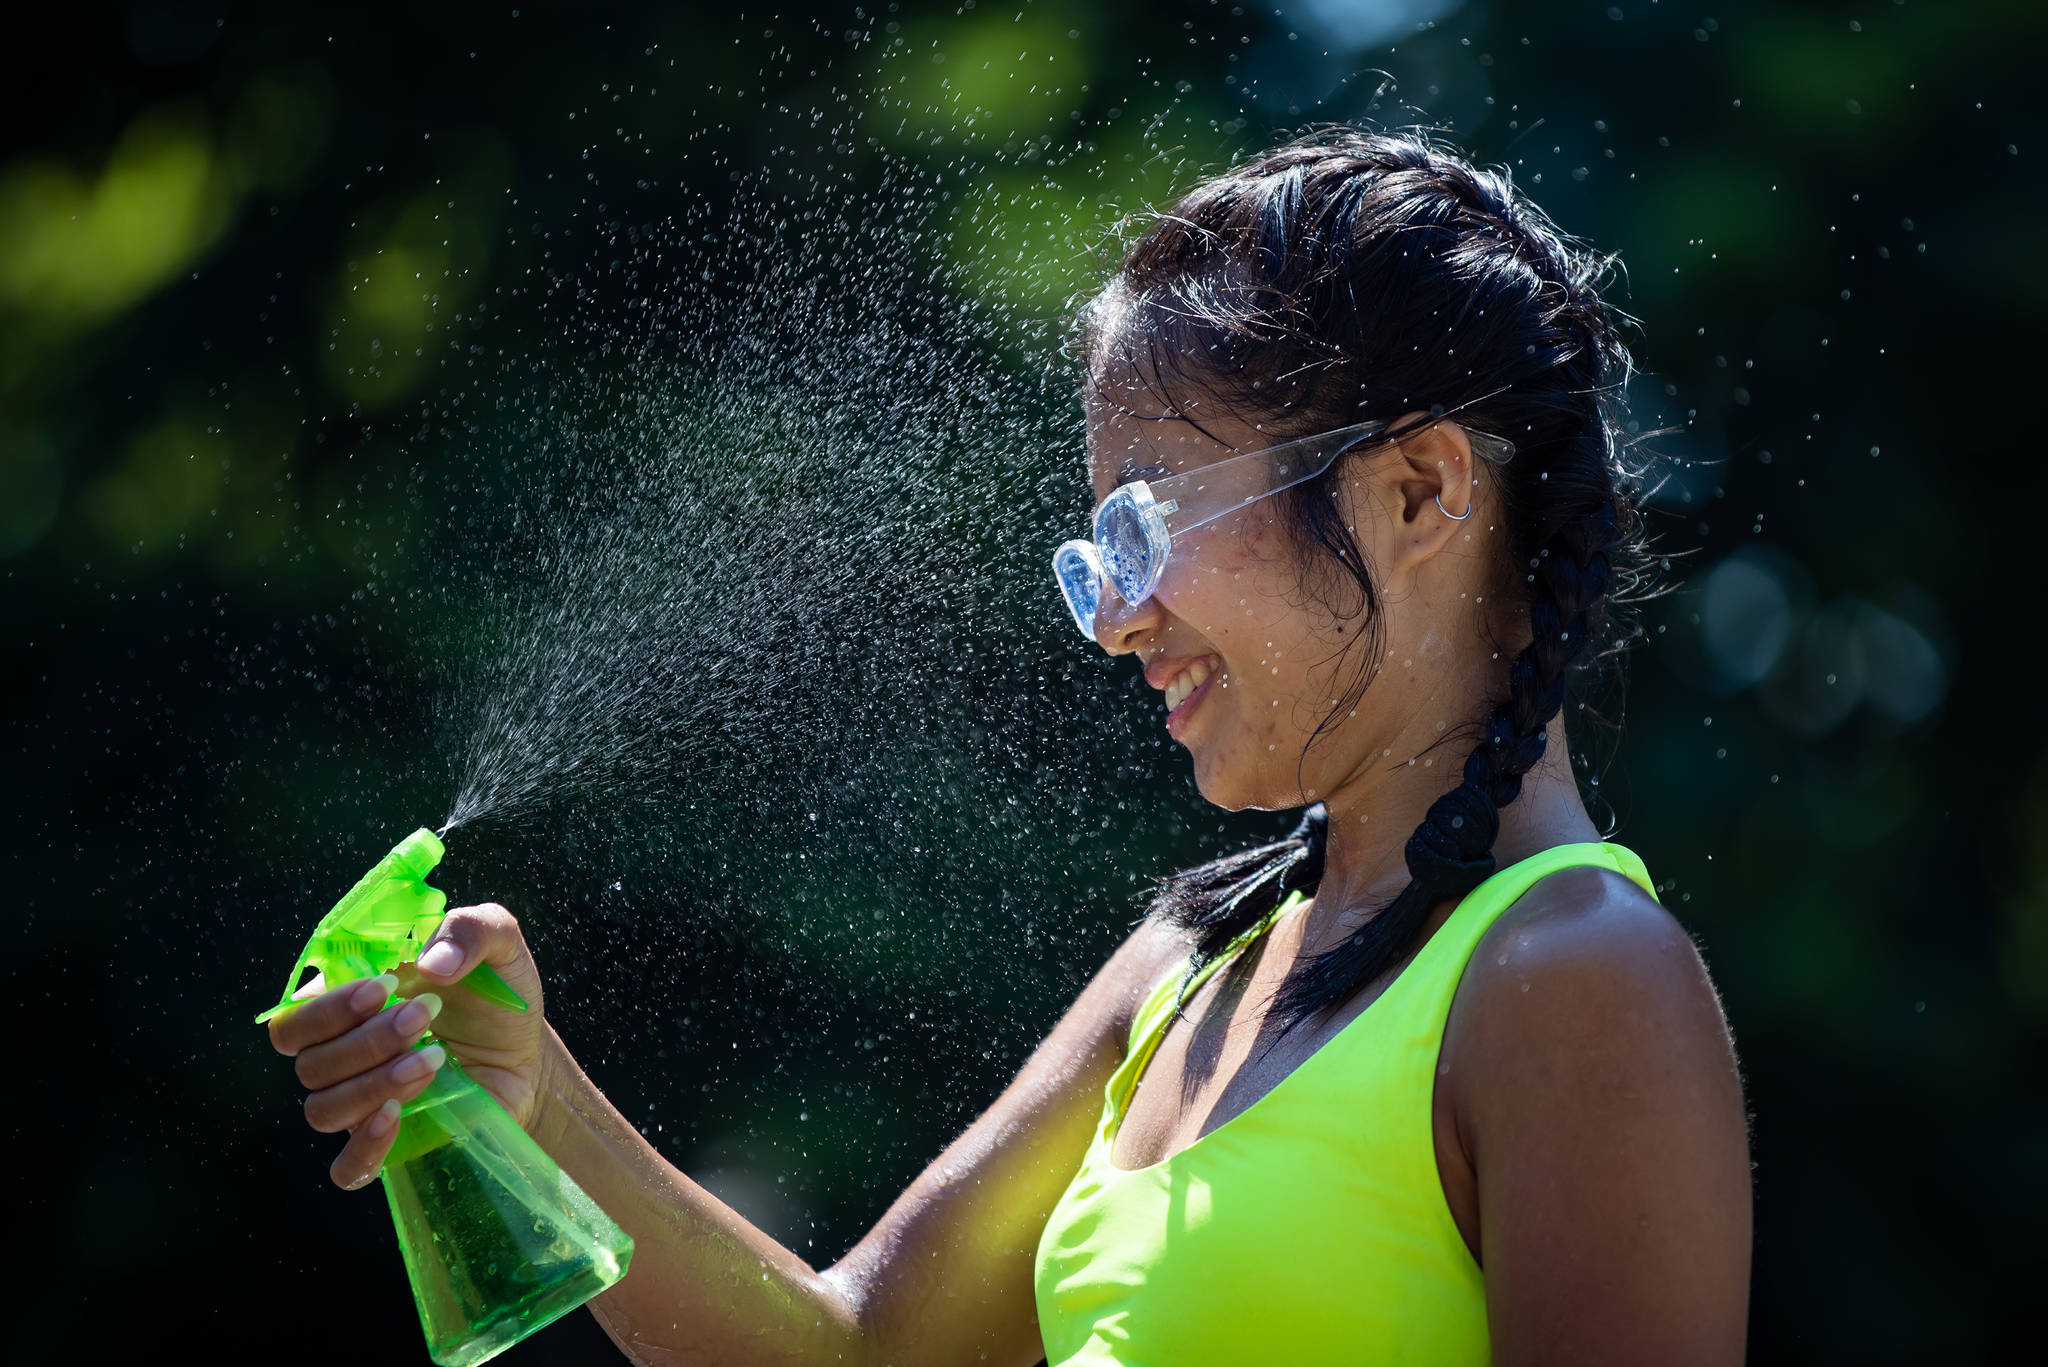 Leanne Opuyes uses a spray bottle to mist her face while cooling off in the frigid Lynn Creek water in North Vancouver, B.C., on Monday, June 28, 2021. Environment Canada warns the torrid heat wave that has settled over much of Western Canada won't lift for days, although parts of British Columbia and Yukon could see some relief sooner. THE CANADIAN PRESS/Darryl Dyck